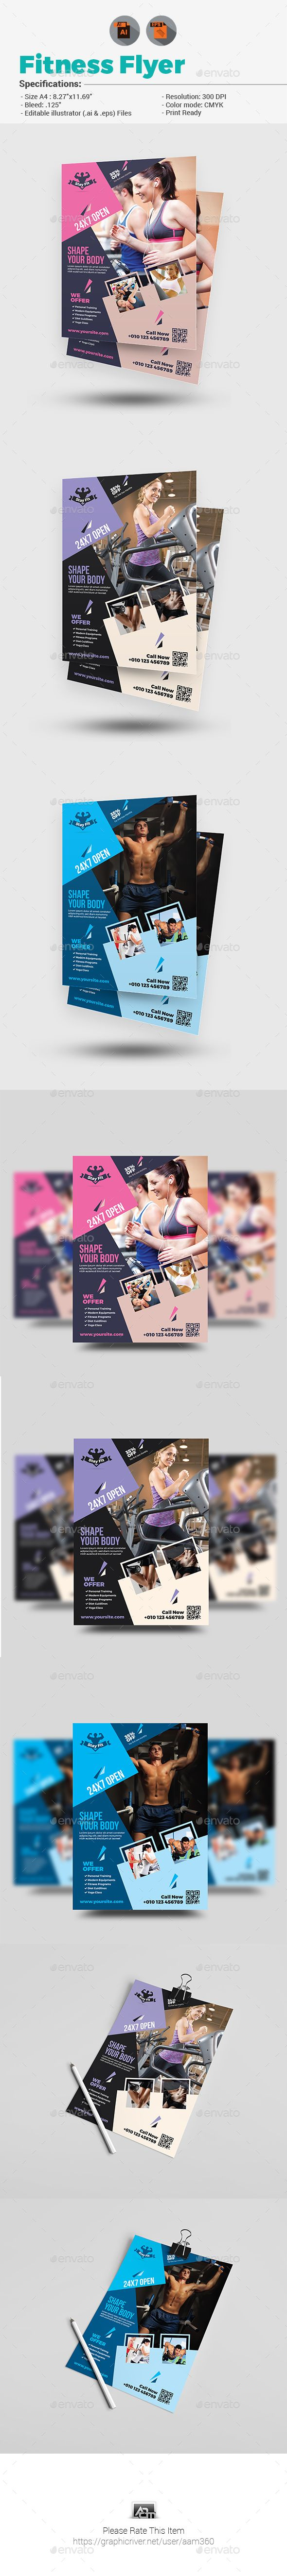 #Body #Fitness Club Flyer - Sports Events Download here: https://graphicriver.net/item/body-fitness-club-flyer/19689910?ref=alena994